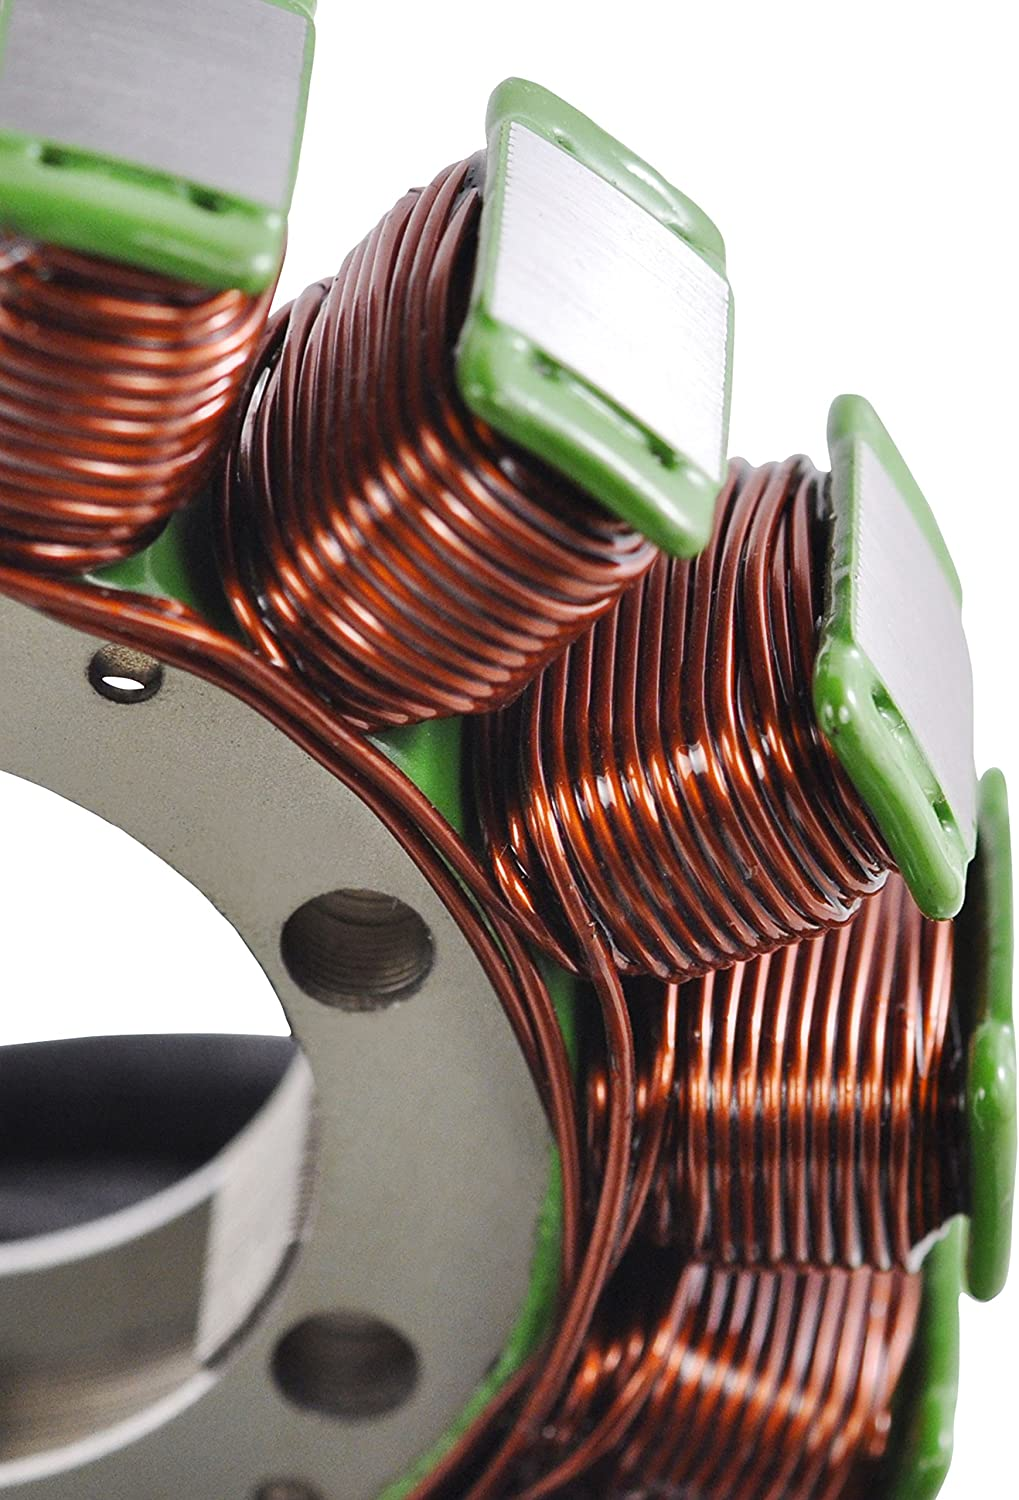 Stator For Yamaha YZF R1 LE 2009 2010 2011 2012 2013 2014 OEM Repl.# 14B-81410-00-00